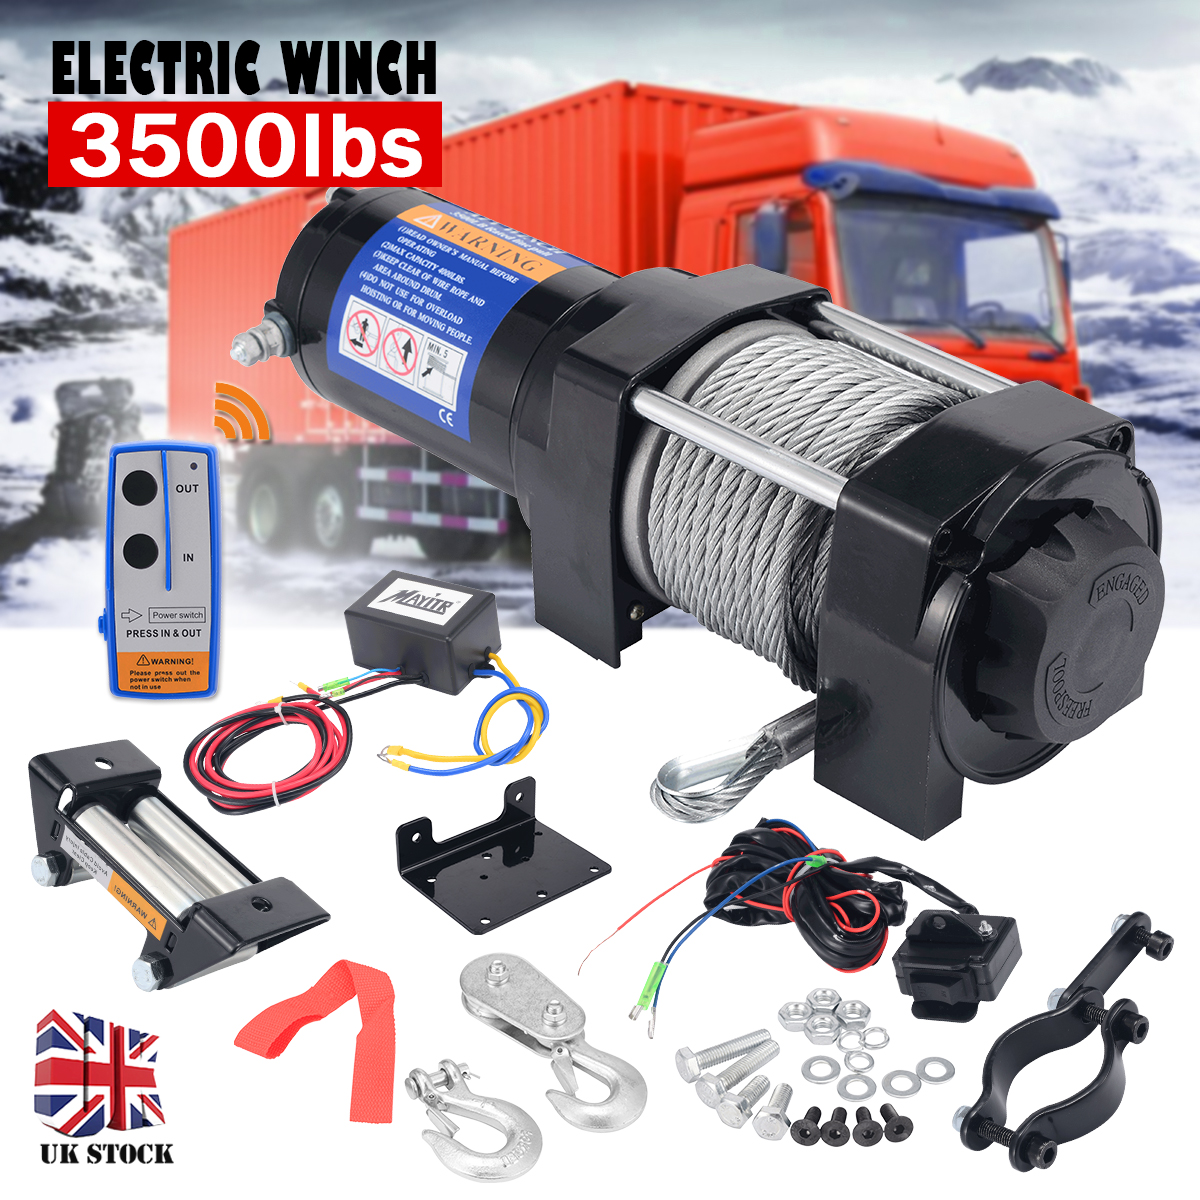 3500LBS Electric Recovery Winch Kit 12V DC Boat ATV Trailer Steel Cable Powerful Winch Car Trailer Truck With Remote Control